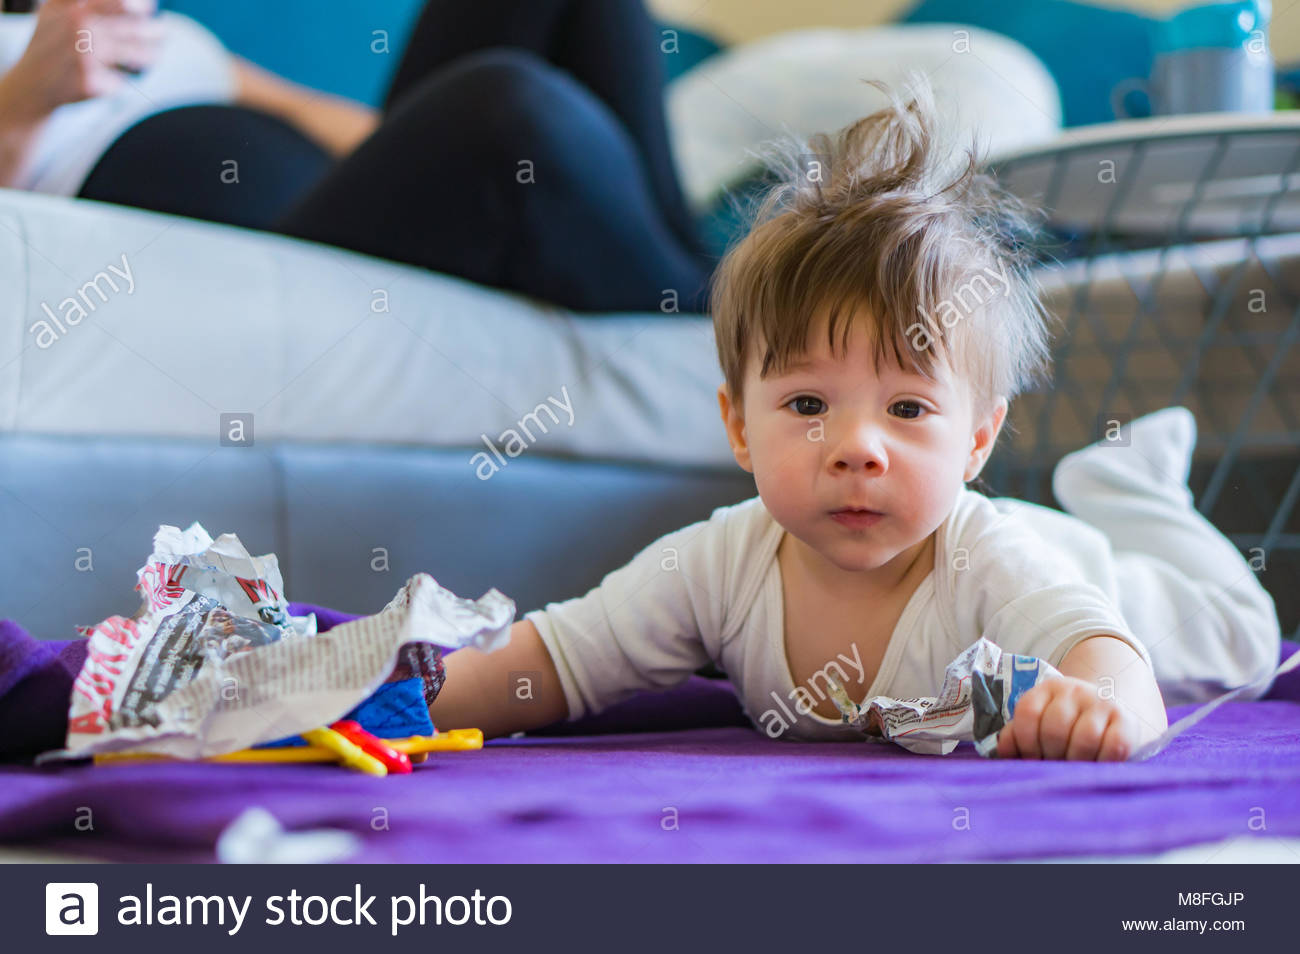 Baby boy lying on the floor and destroying a newspaper leaving pieces - Stock Image